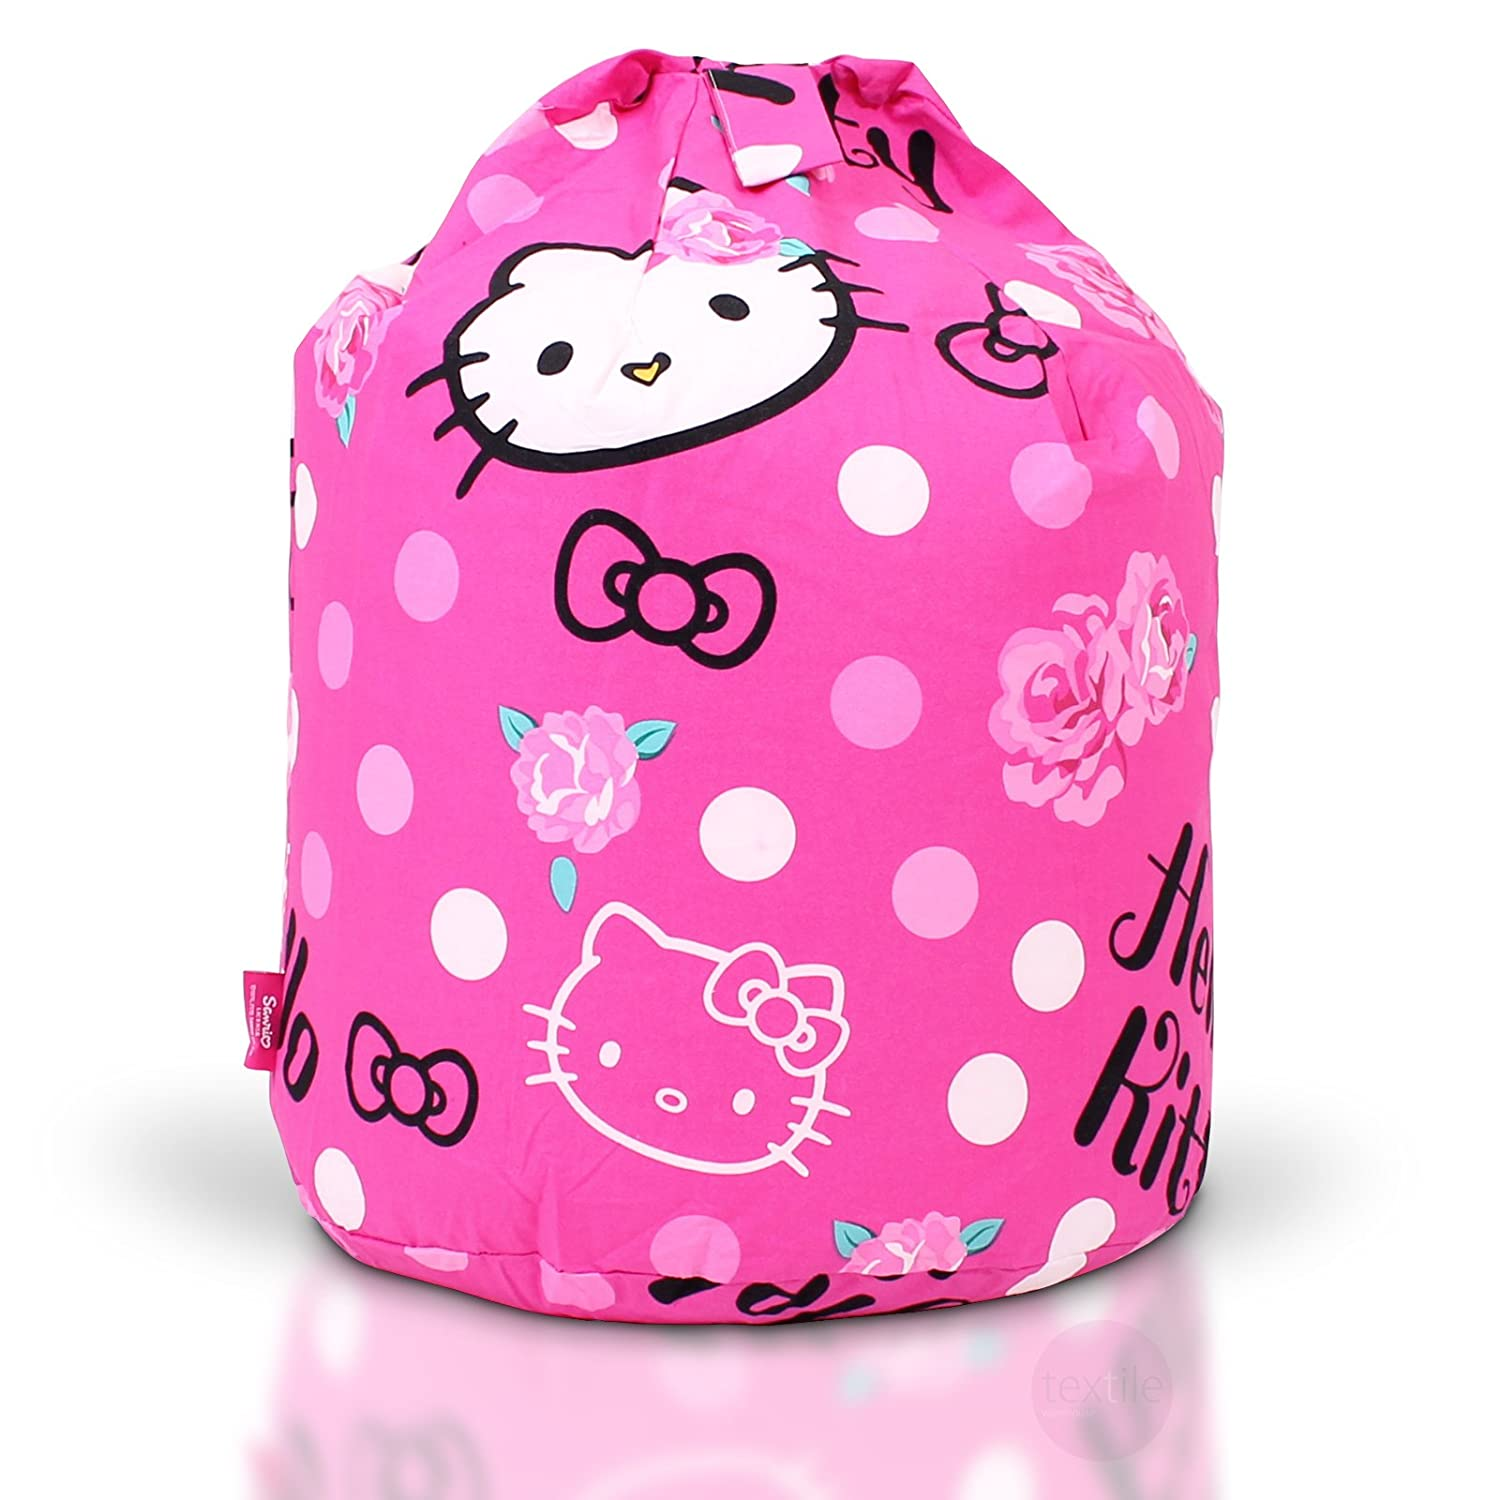 Hello Kitty Sommerwind Pink Cotton Bean Bag Character World